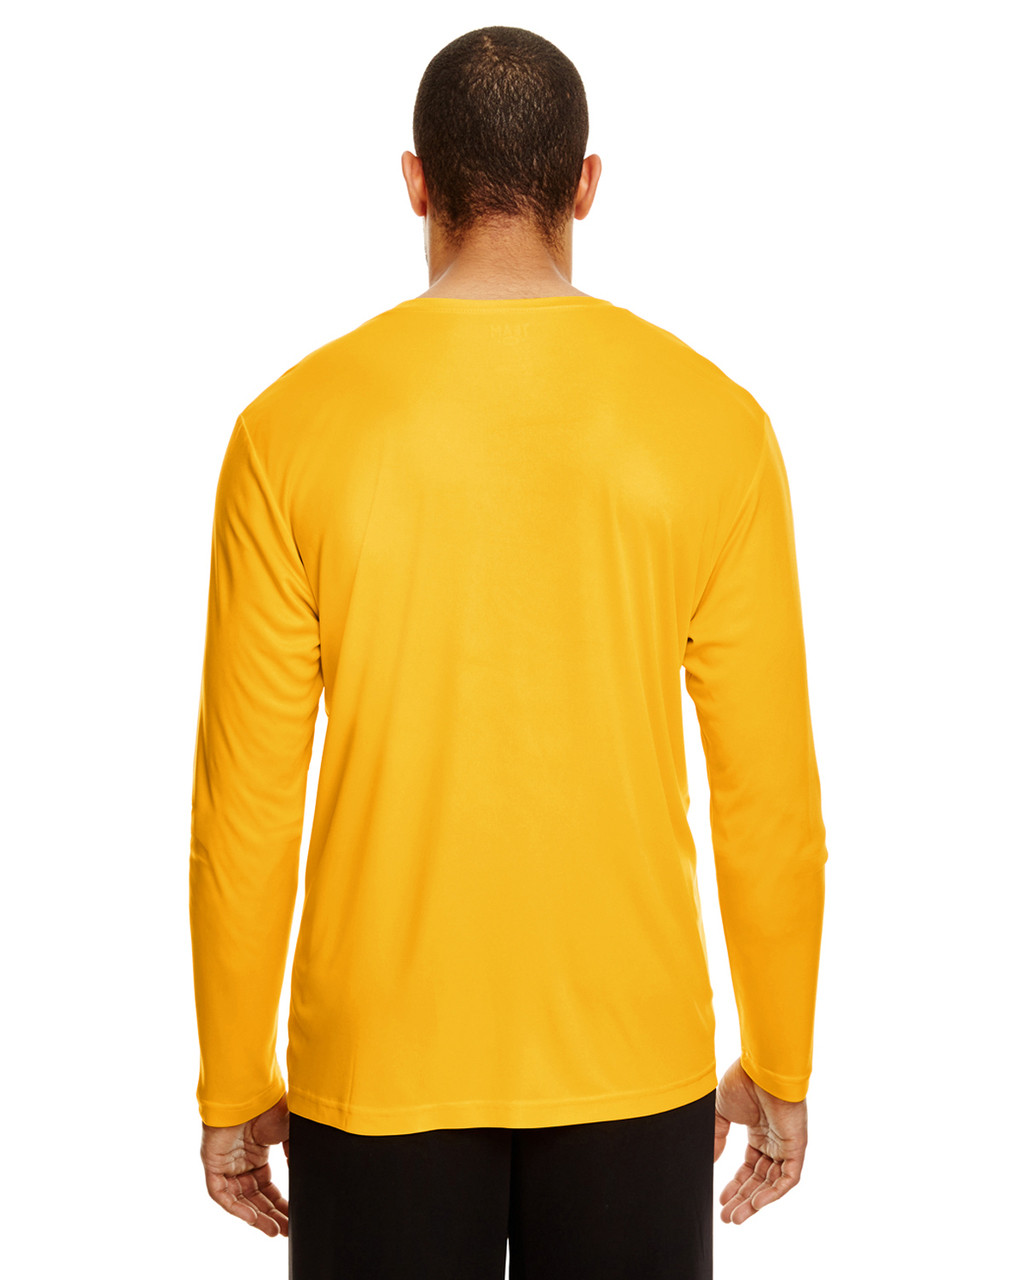 Sport Athletic Gold, Back - TT11L Team 365 Men's Zone Performance Long Sleeve T-Shirt | BlankClothing.ca